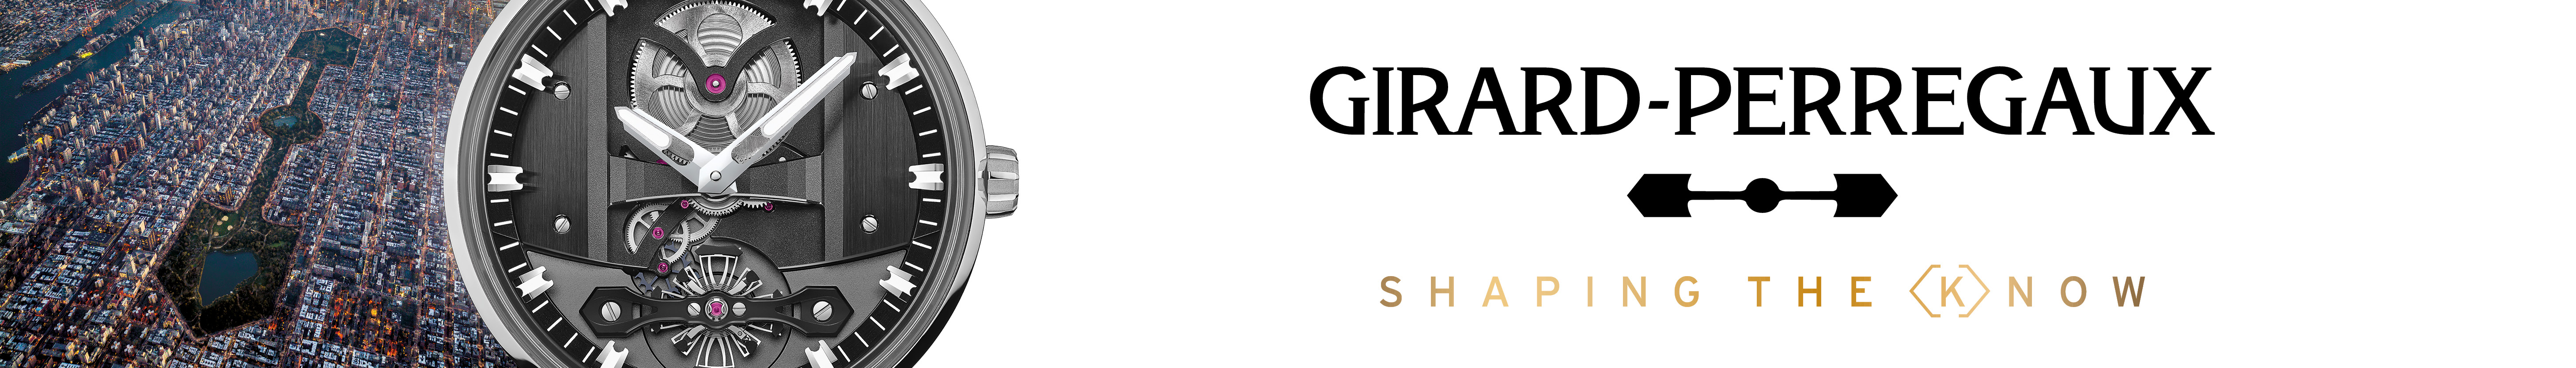 Girard-Perregaux Women's Watches